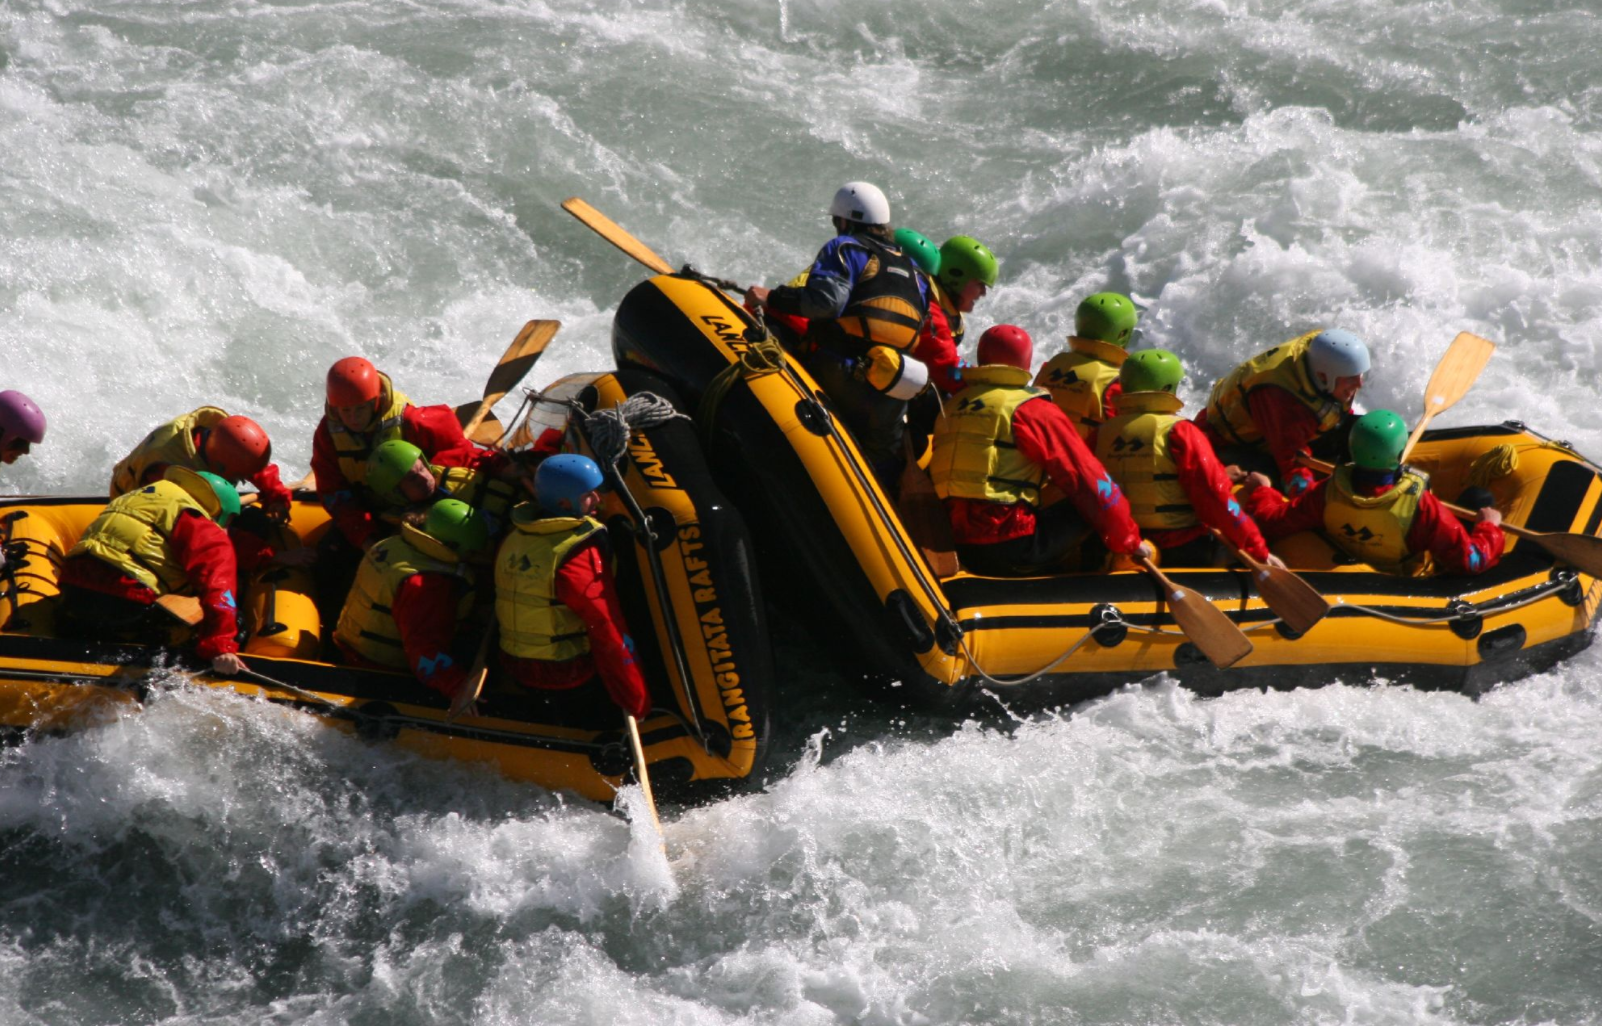 Colorado Rafter Eric Ashby Is Missing After Raft Overturns Photo: Prankster, No Change, WikiCommons